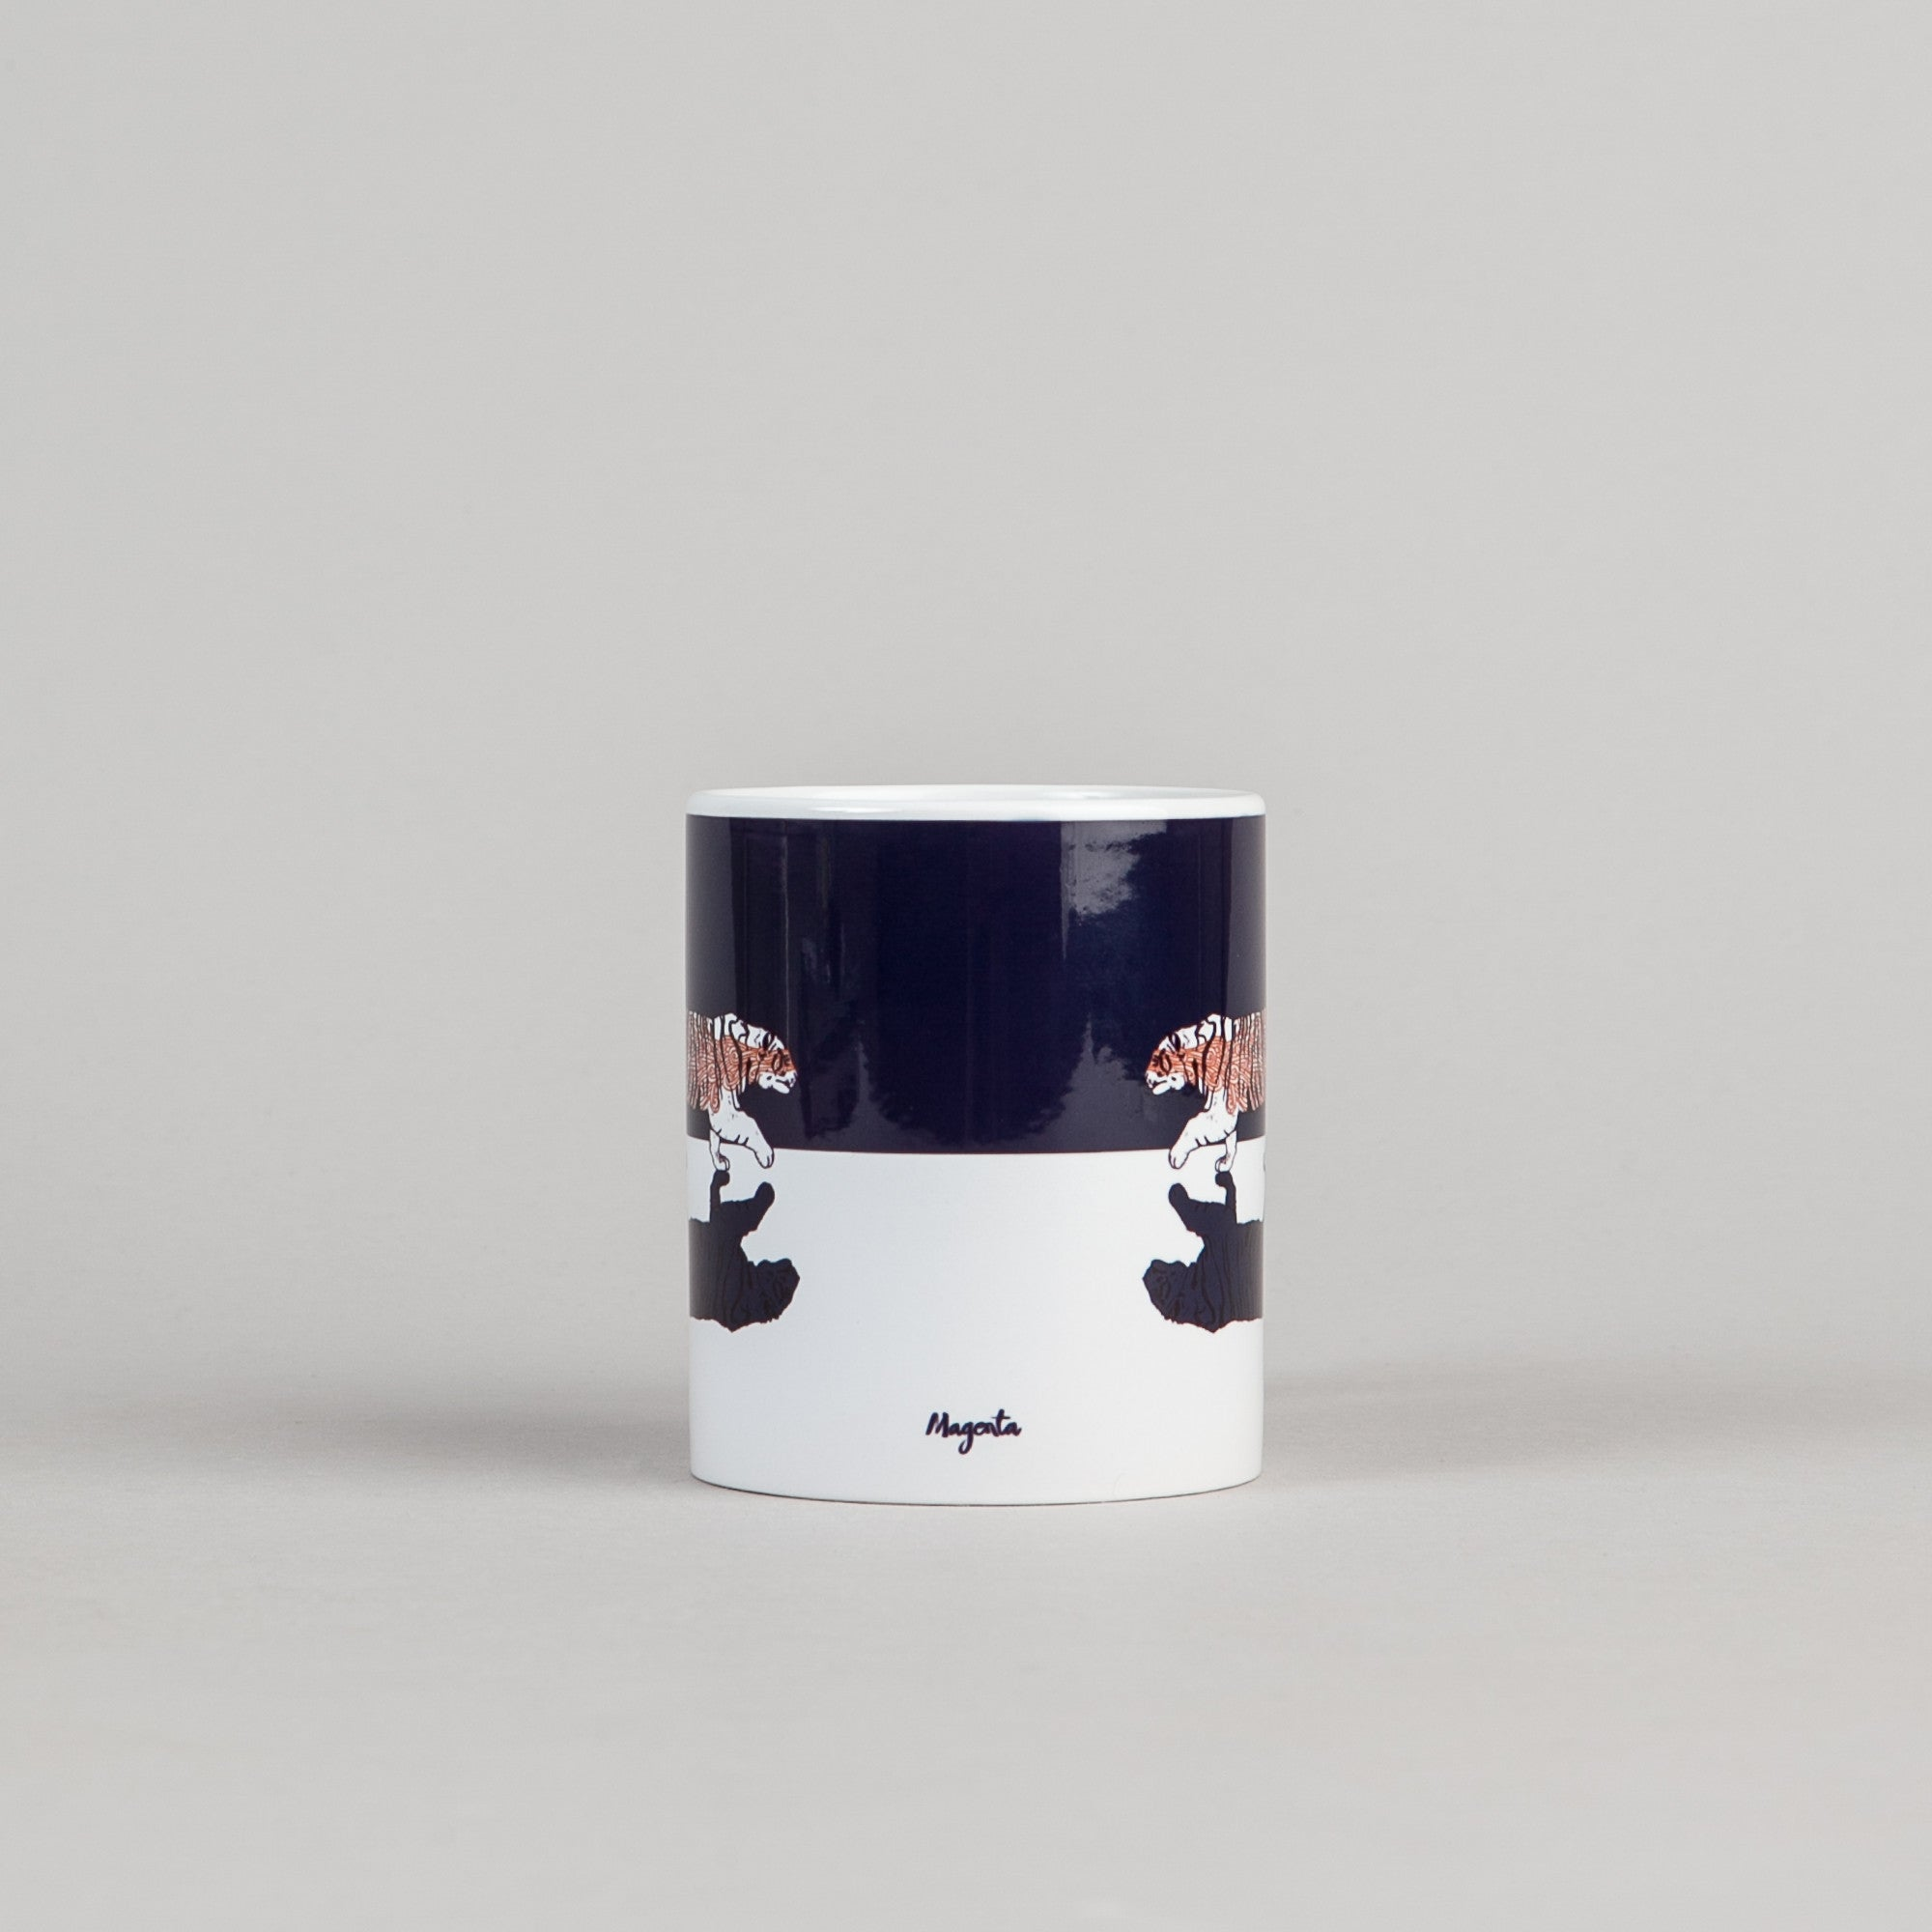 Magenta Tiger Mug - Black / White